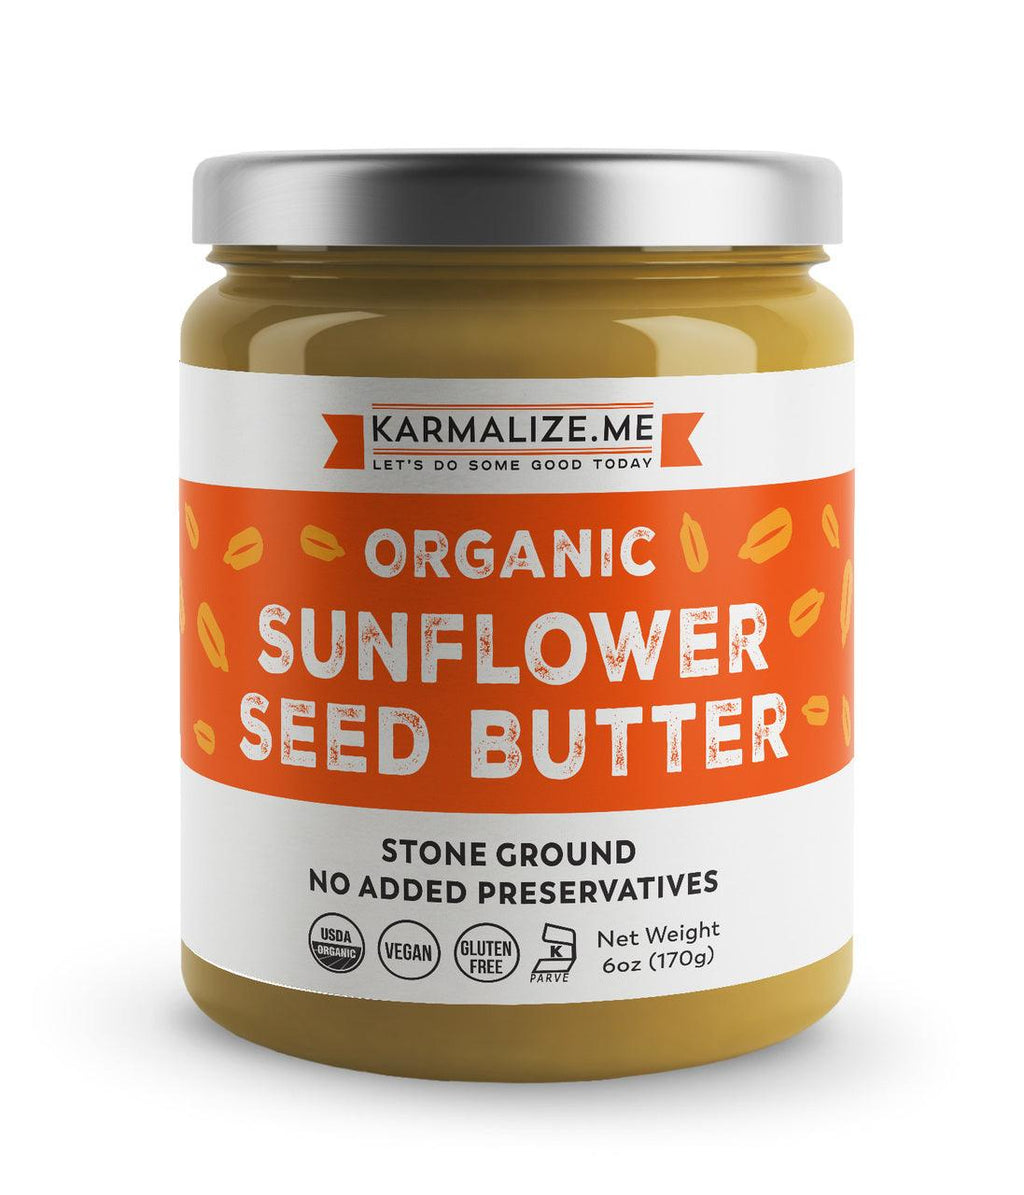 Organic Sunflower Seed Butter -  Freshly Made.